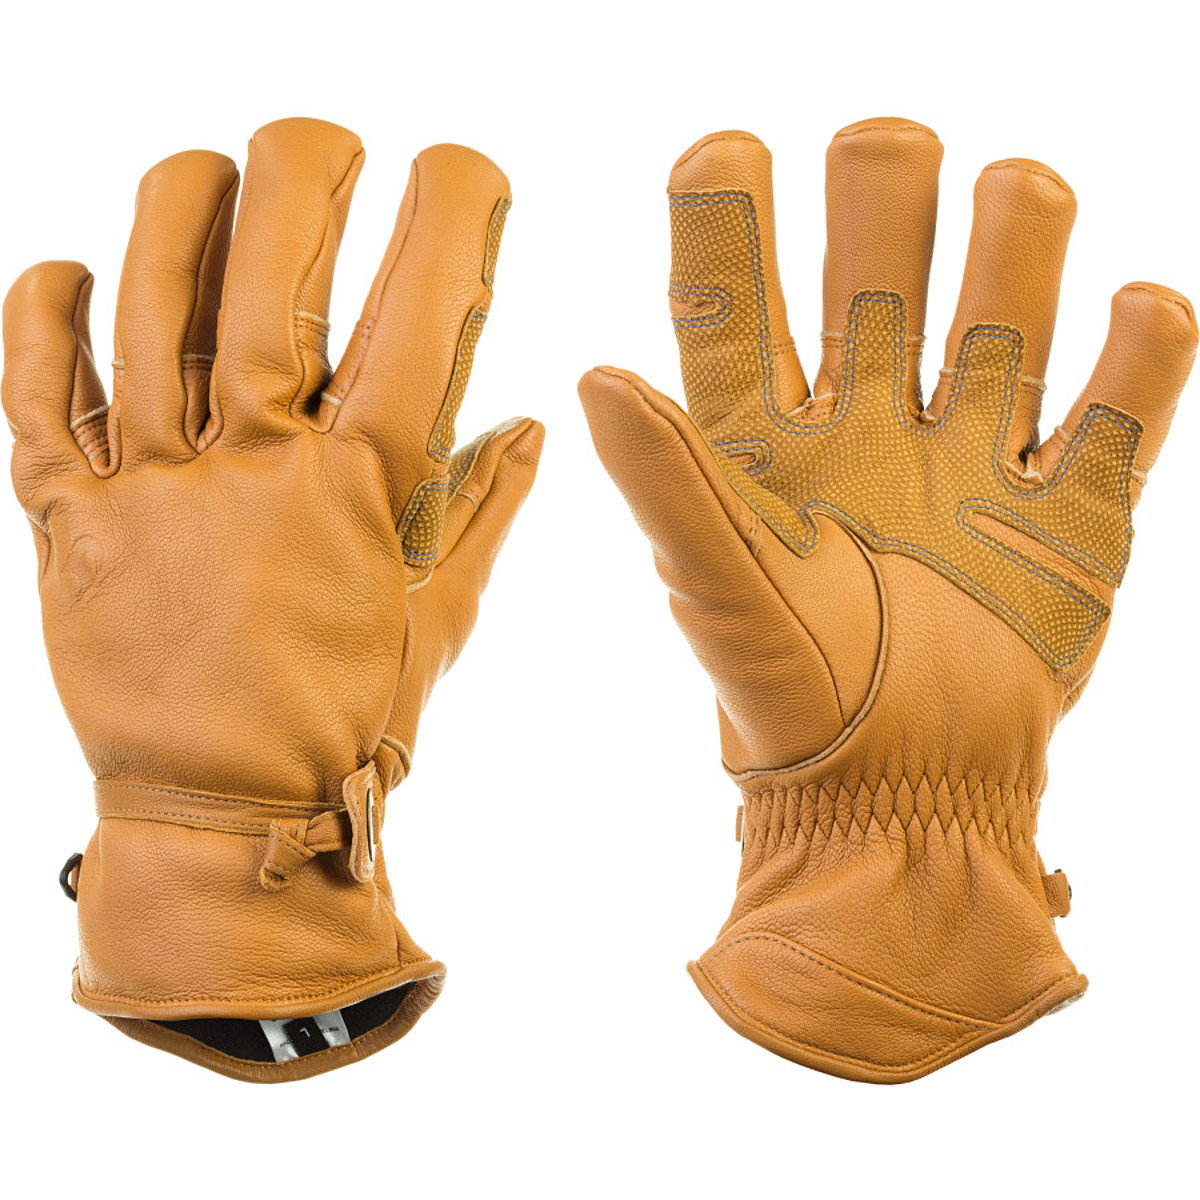 Backcountry.com Wasatch Glove